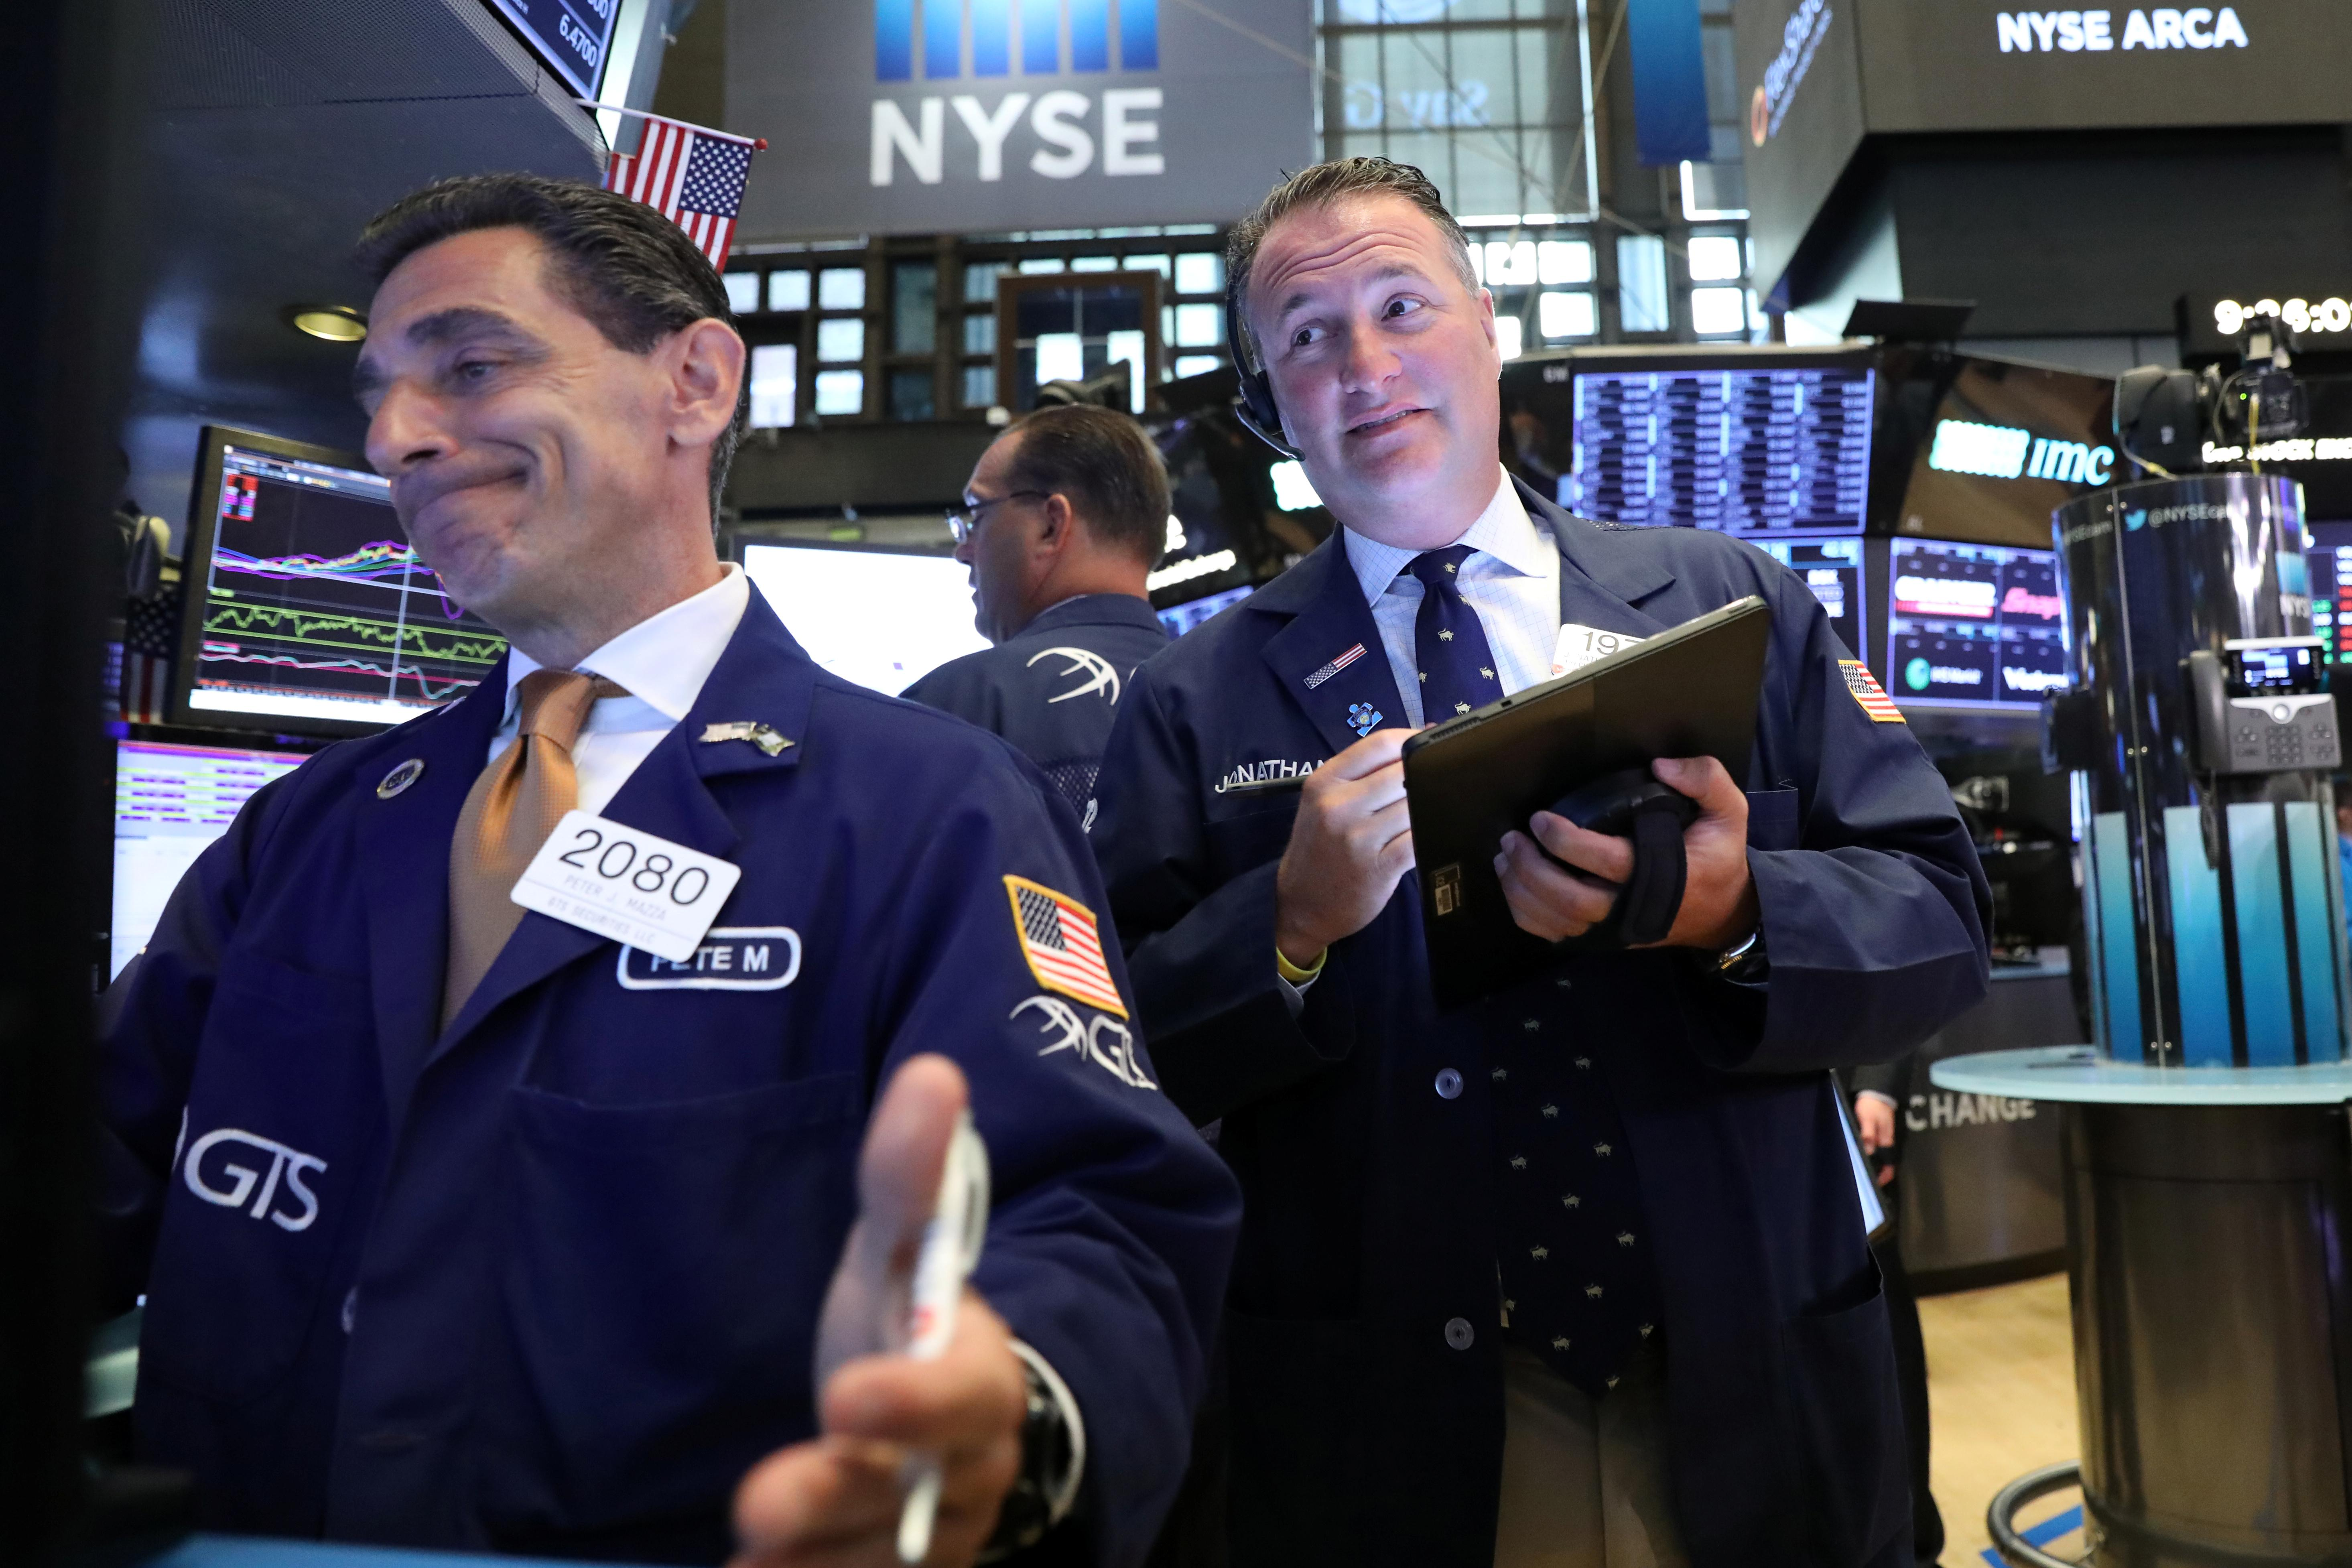 Wall Street slips after mixed bank earnings, Trump comments